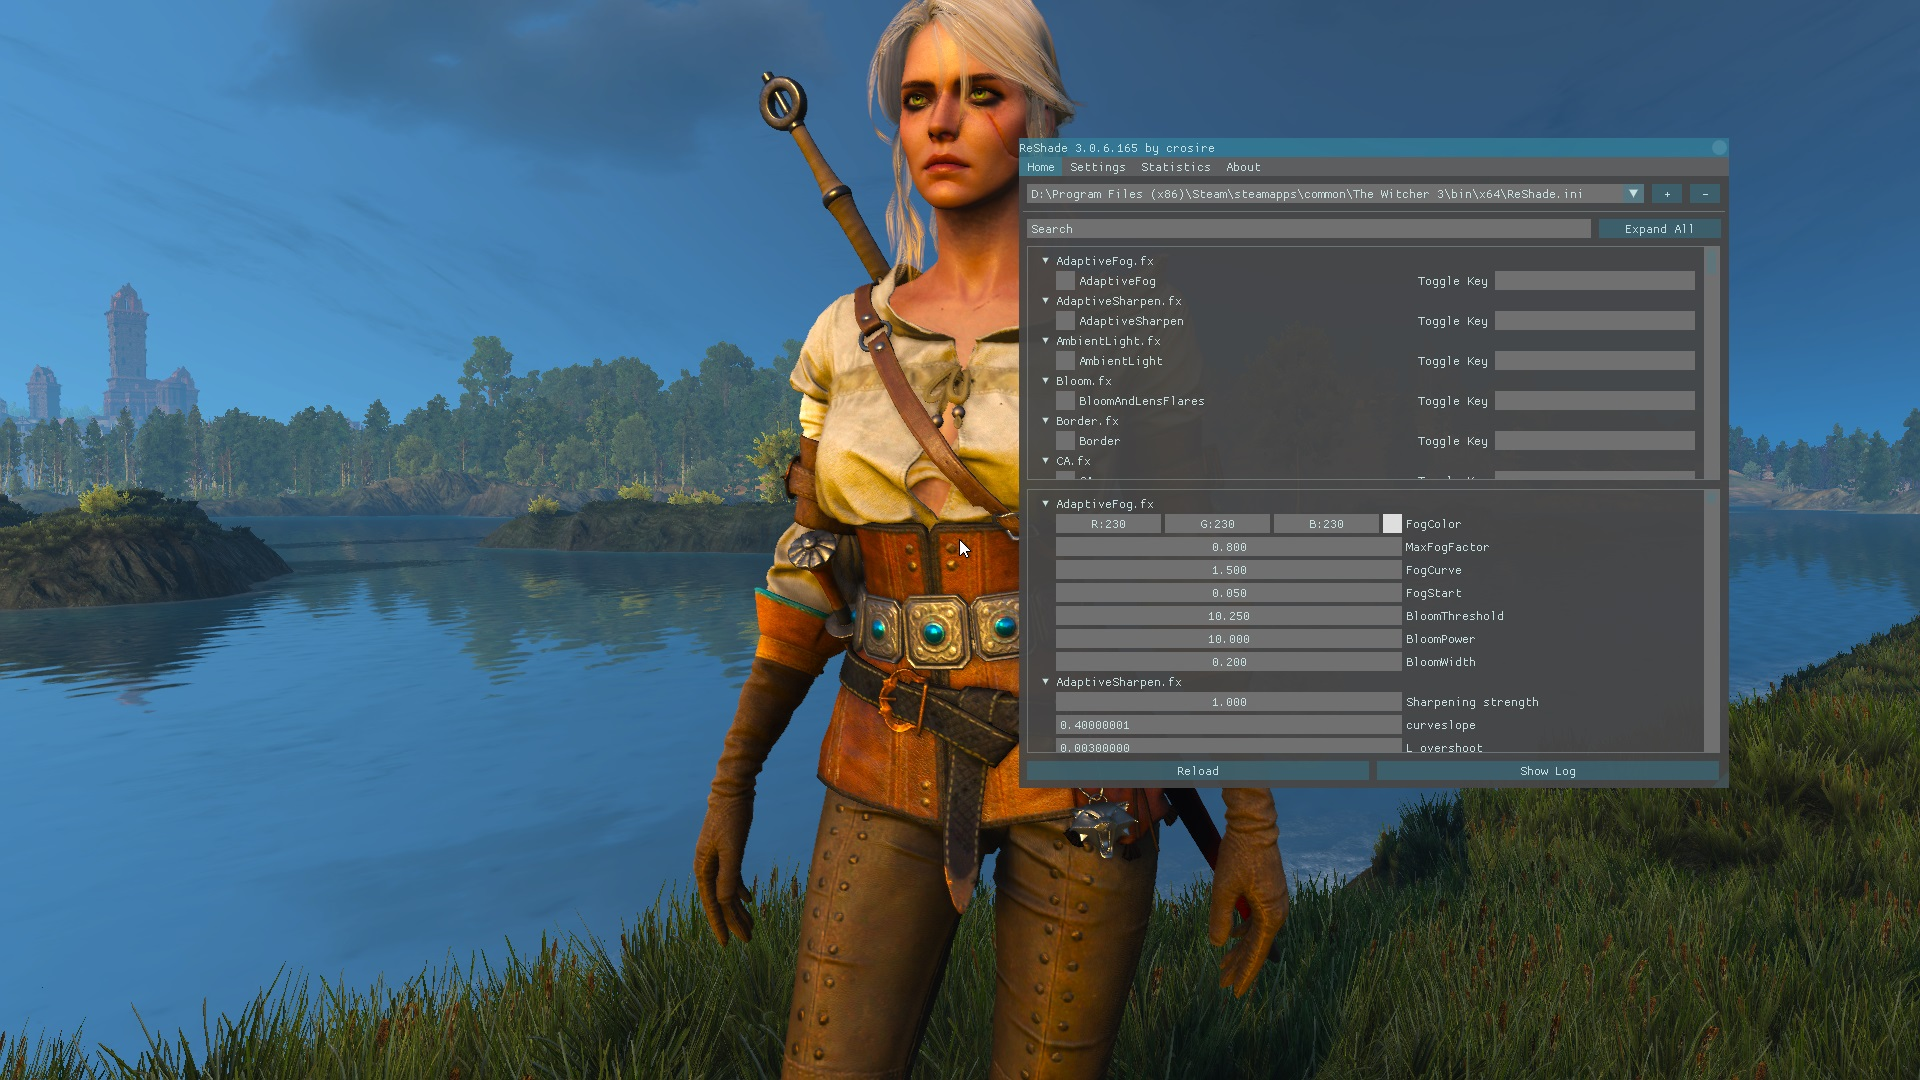 Steam Community :: Guide :: Witcher 3 and ReShade: All you need to